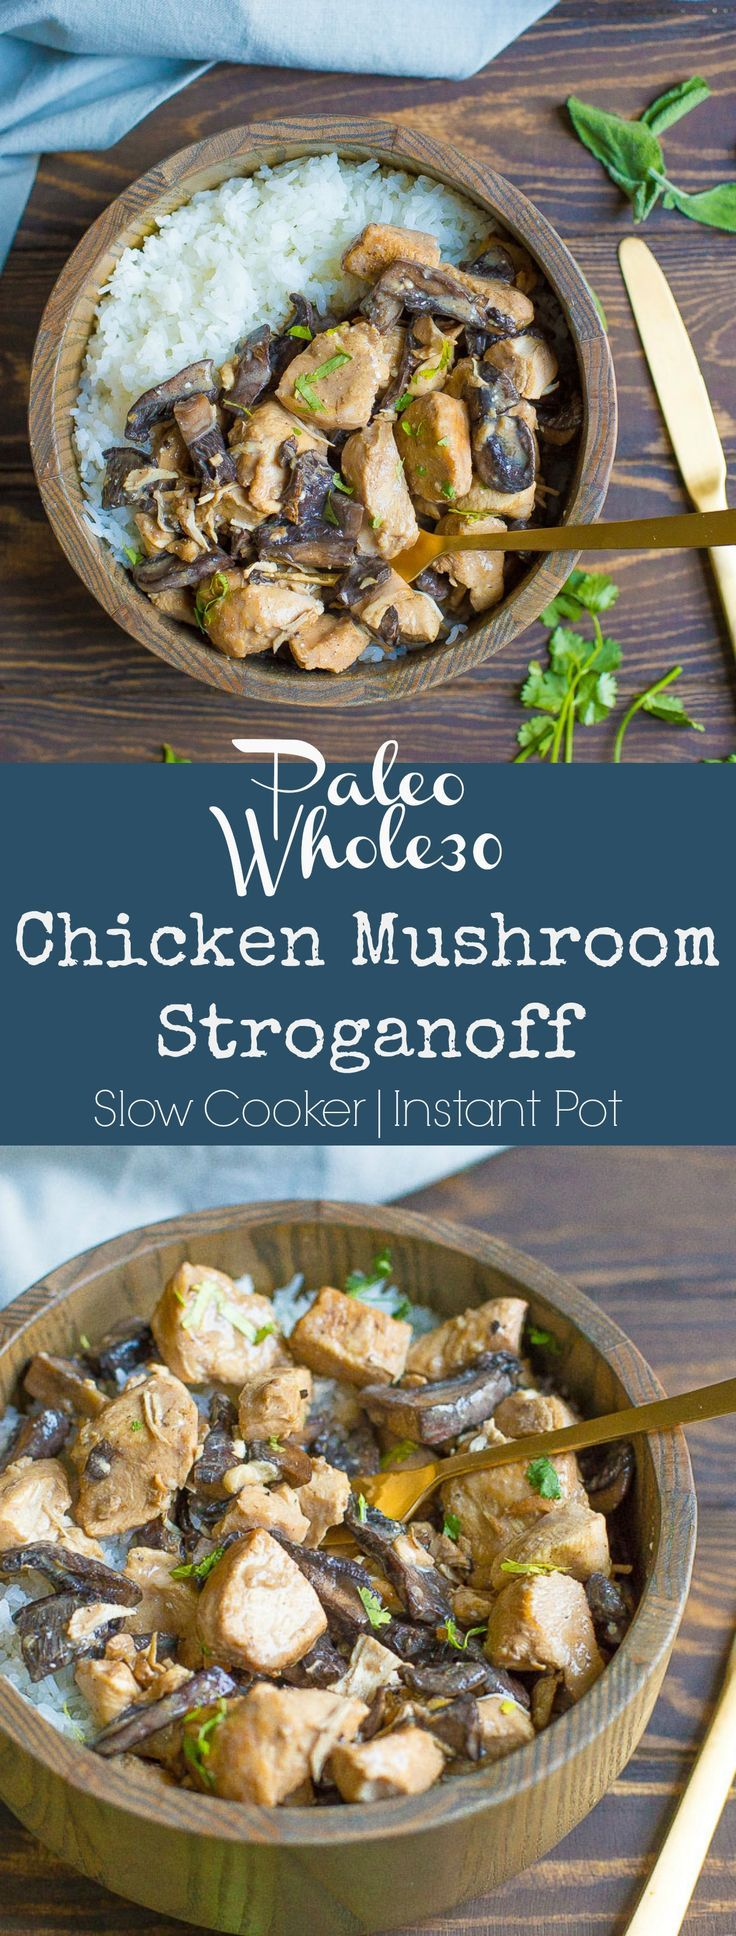 Set it and forget it with this simple Chicken Mushroom Stroganoff! Delicious flavor and creamy taste without dairy! So easy and sure to be loved by the whole family.